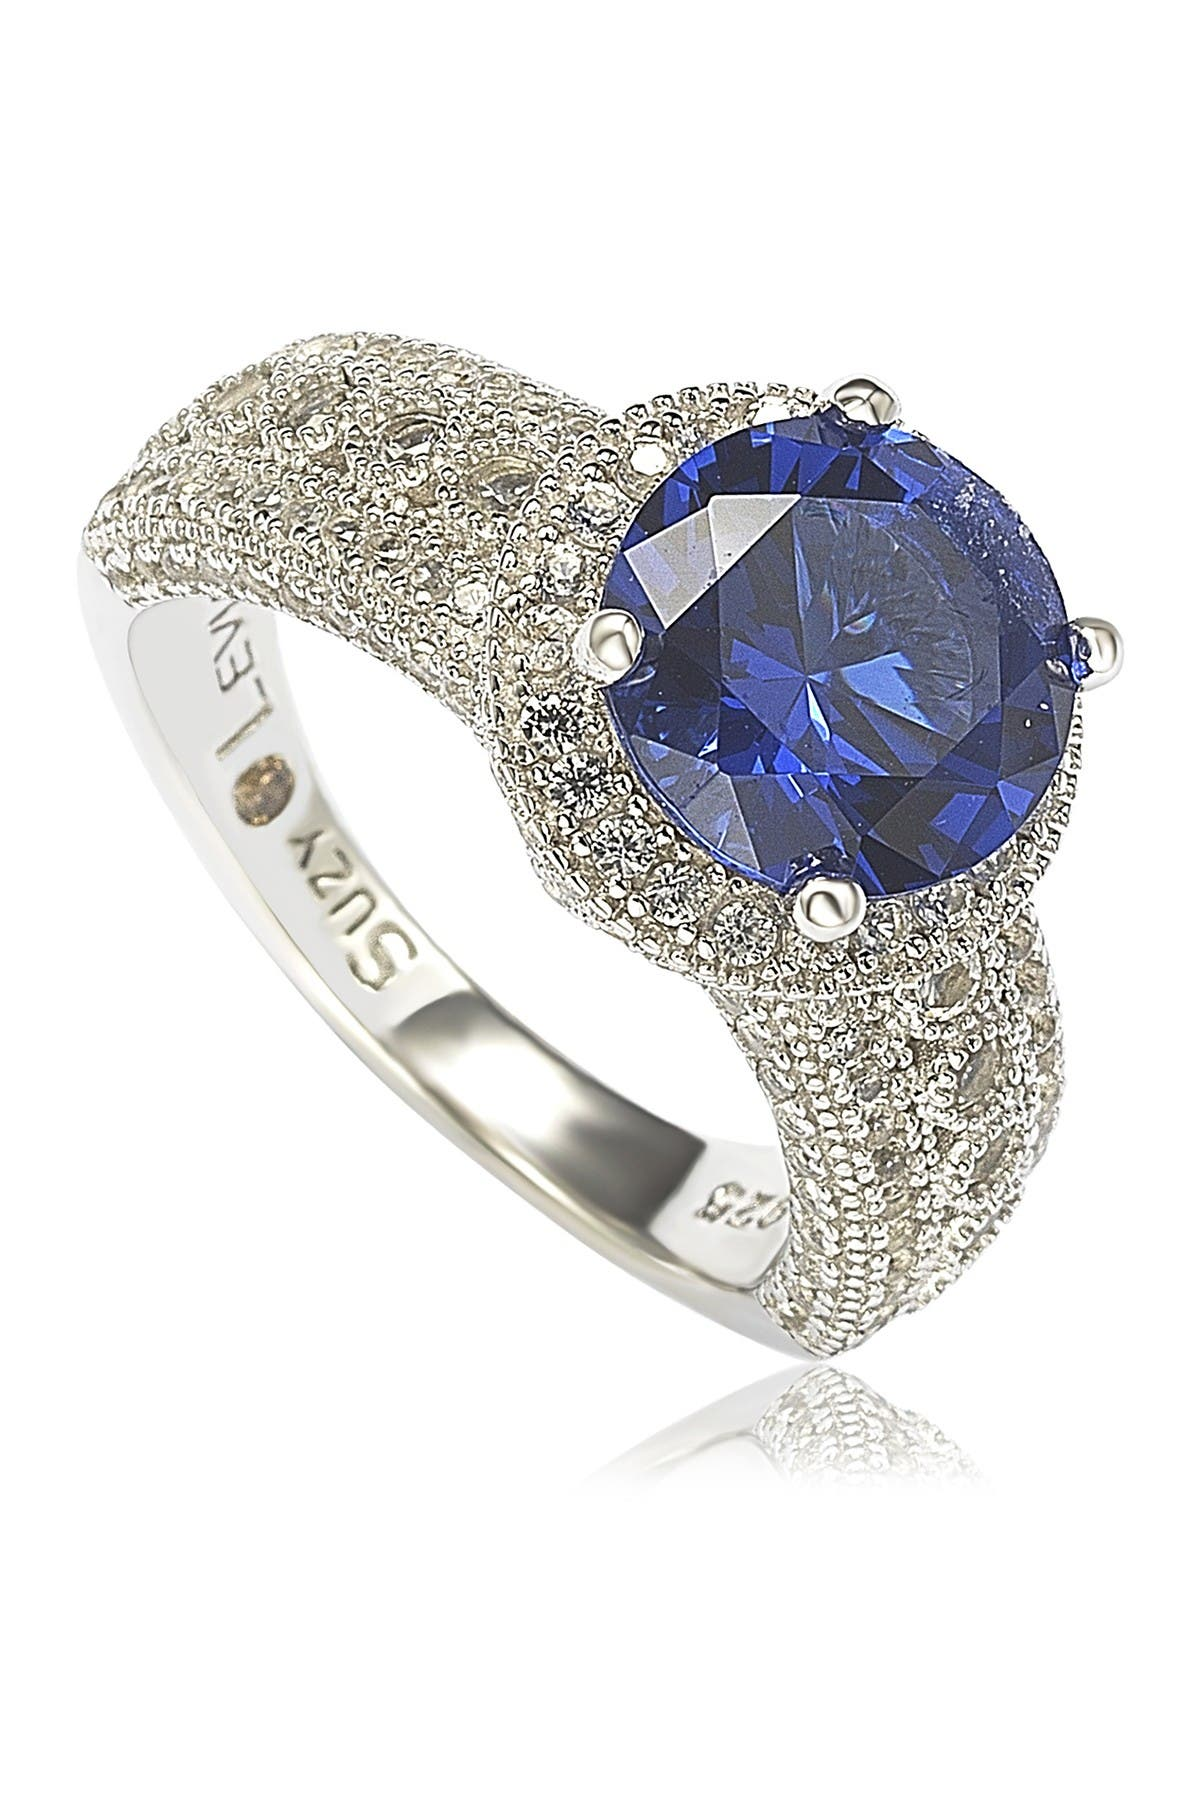 Image of Suzy Levian Sterling Silver Round-Cut Blue Sapphire & Diamond Accent Ring - 0.02 ctw